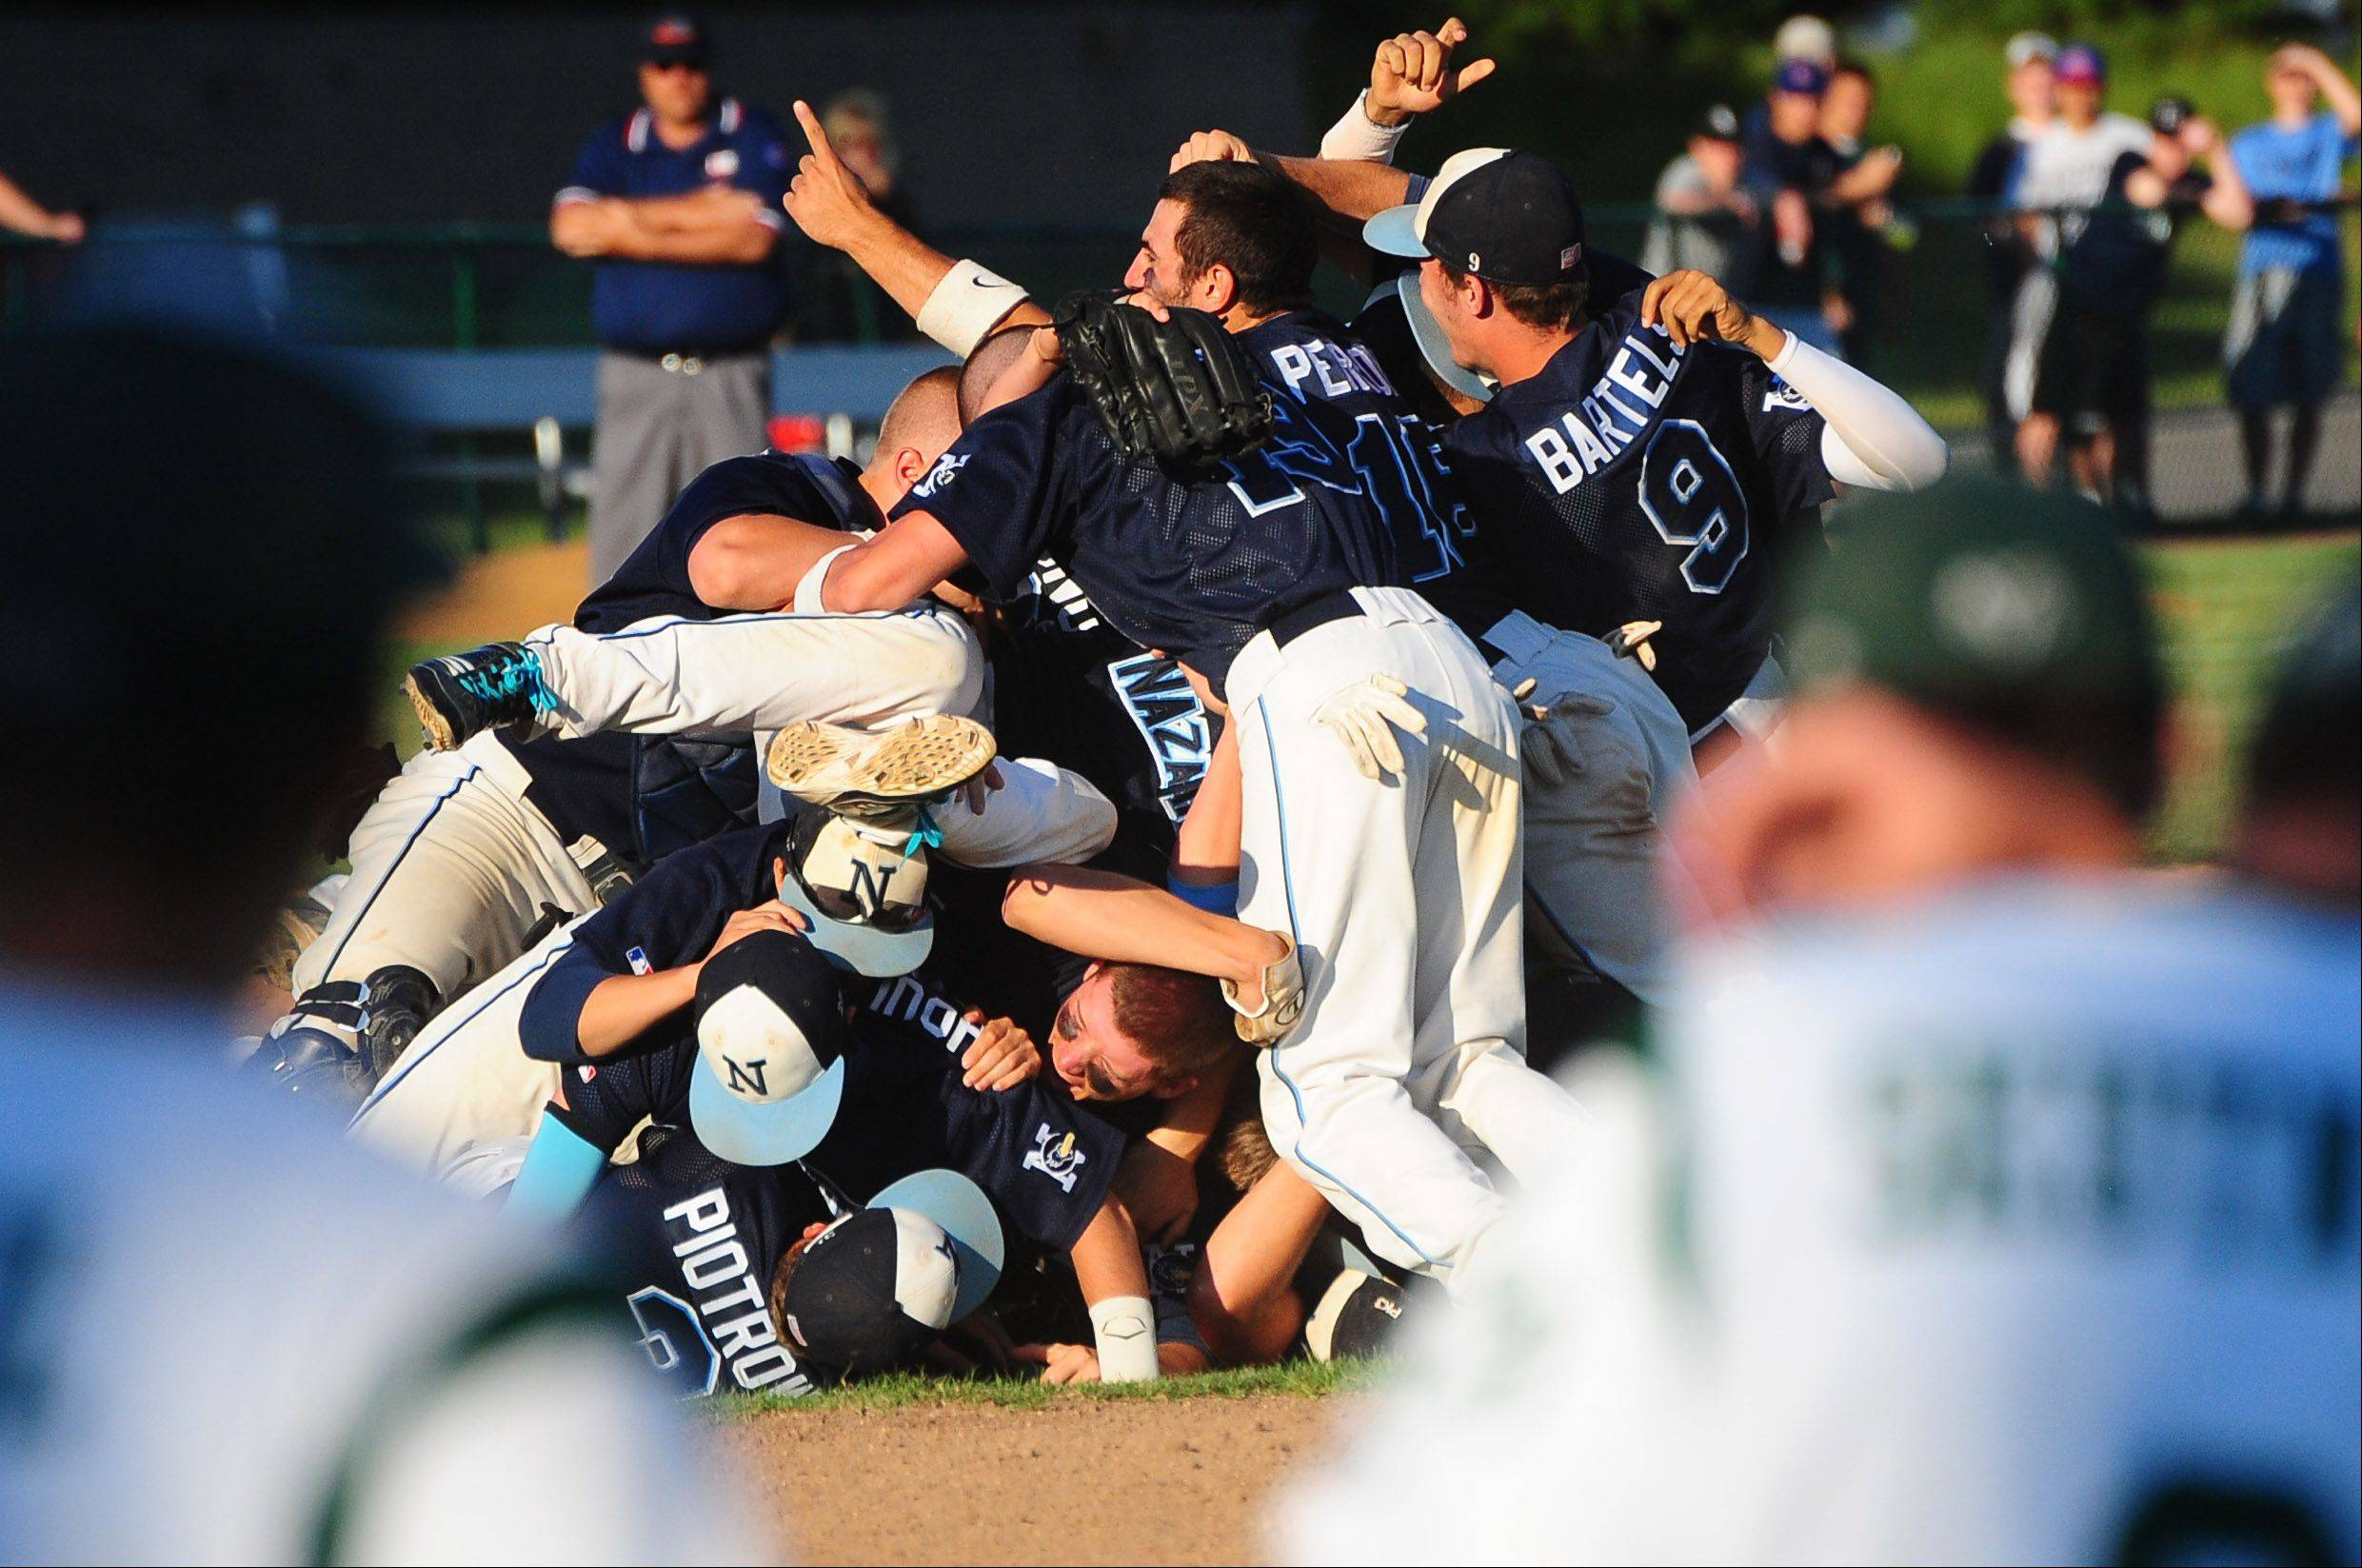 The Nazareth Academy baseball team celebrate after winning the Class 3A baseball supersectional on Monday.